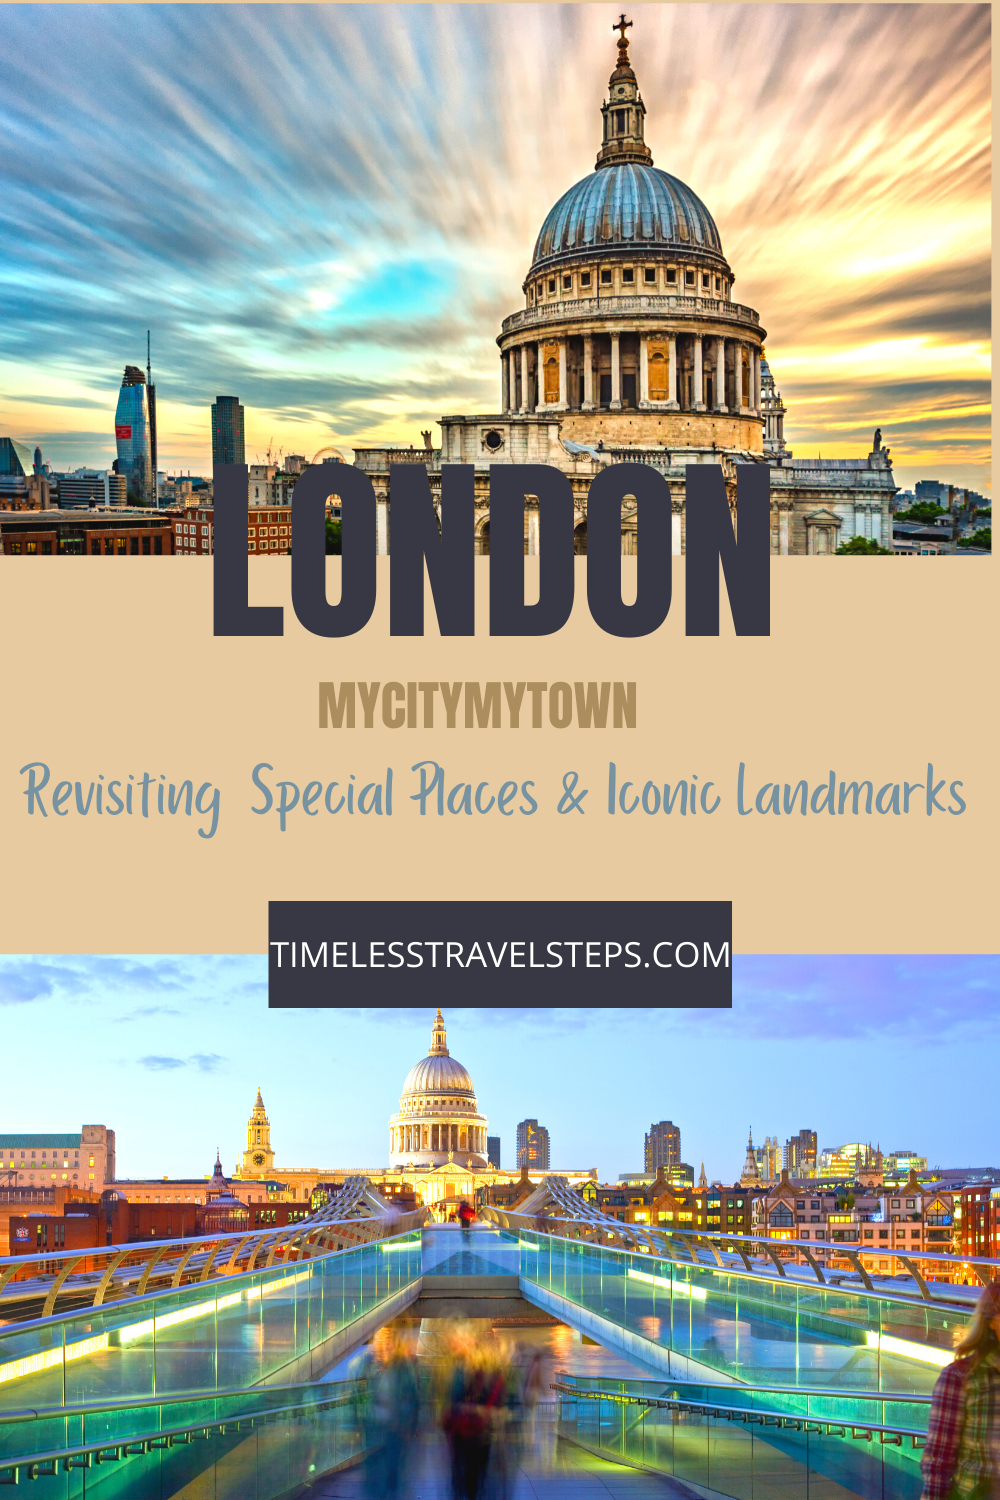 London MyCityMyTown Series is a collection of articles reflecting my yester-years and hope in some way will inspire you to visit this beautiful City.| London | Visit London | Visit England | Landmarks in London | Best places to visit in London | Things to do in London via @GGeorgina_timelesstravelsteps/